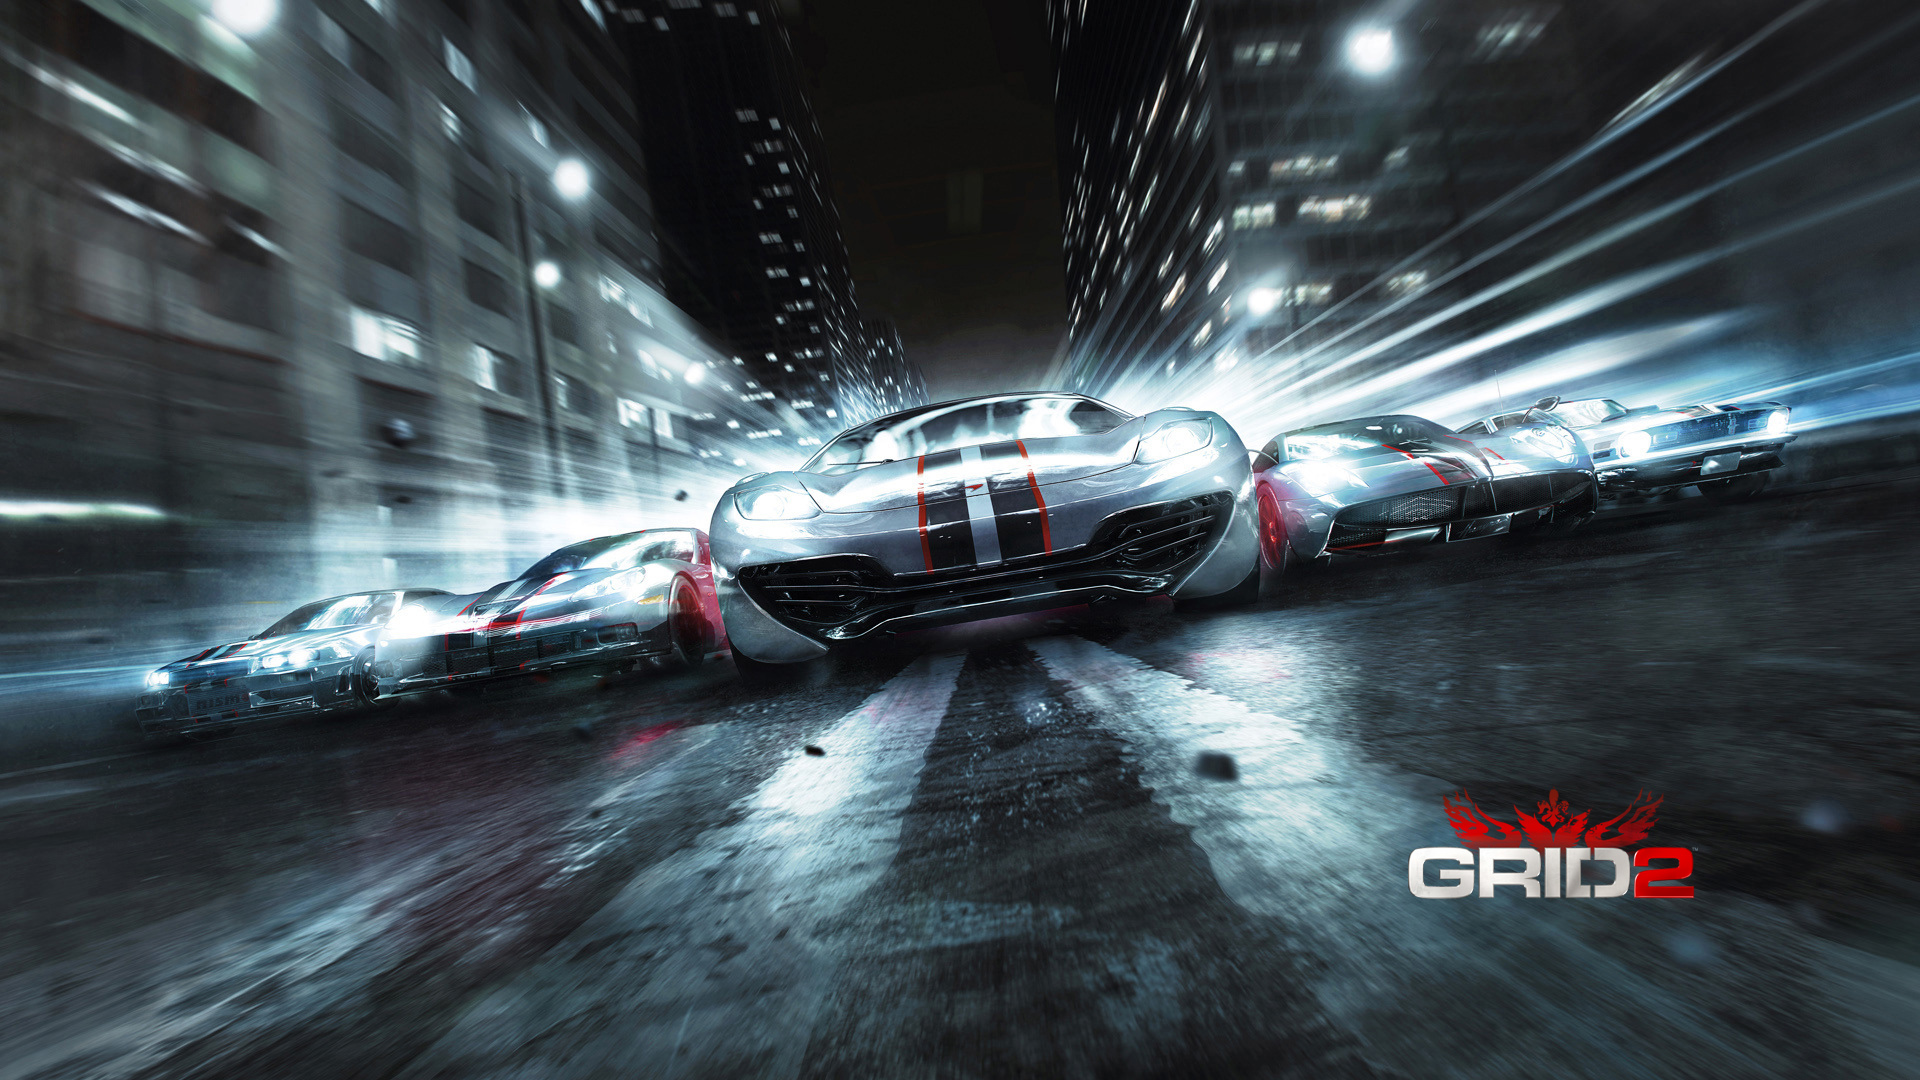 Download Grid 2 2013 Racing Game